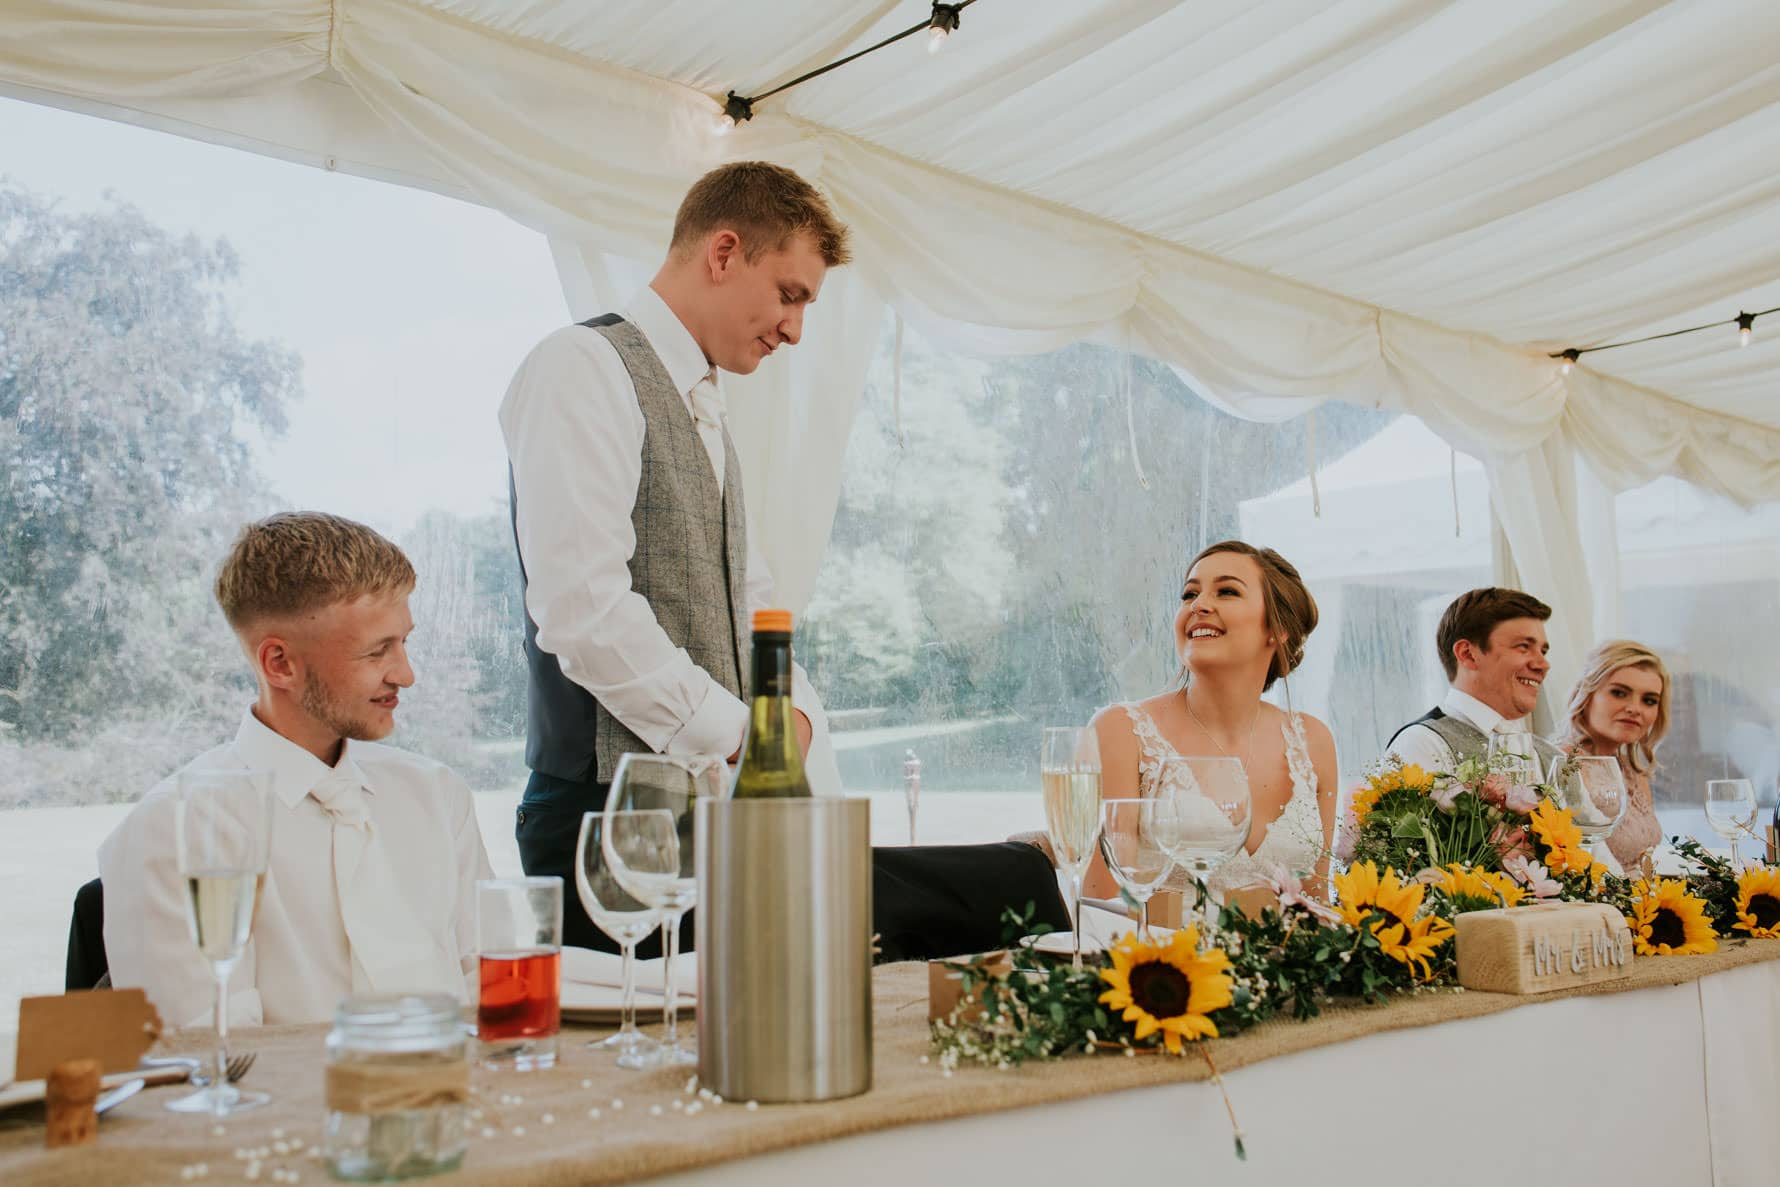 Top table during wedding speeches, bride looking at the groom